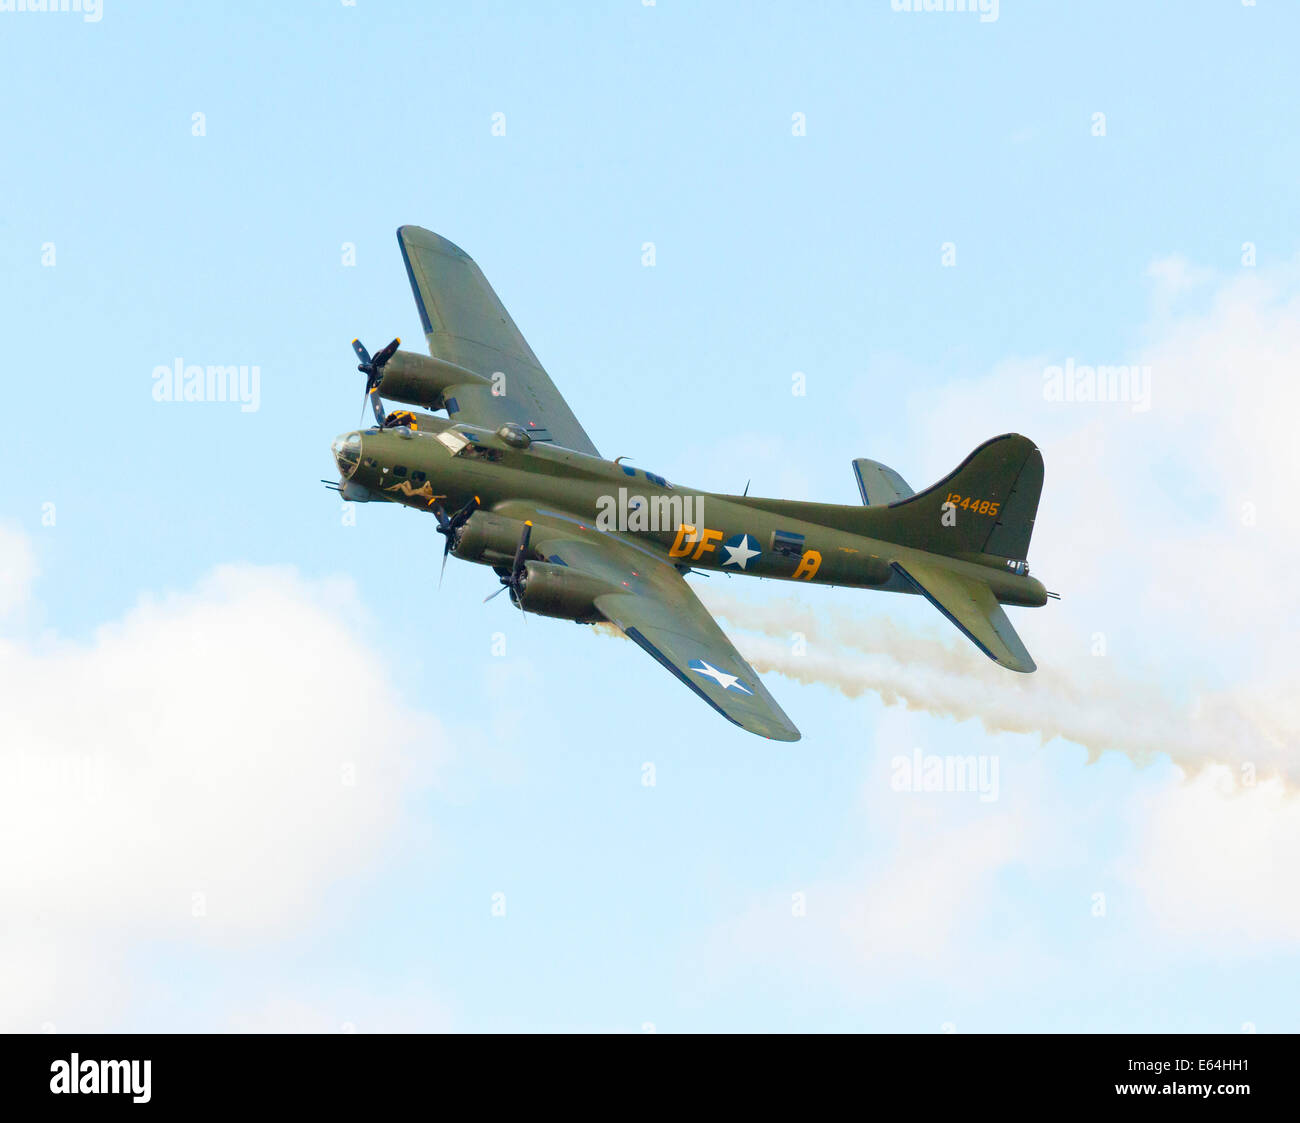 Sally B B17 WW2 bomber in flight - Stock Image